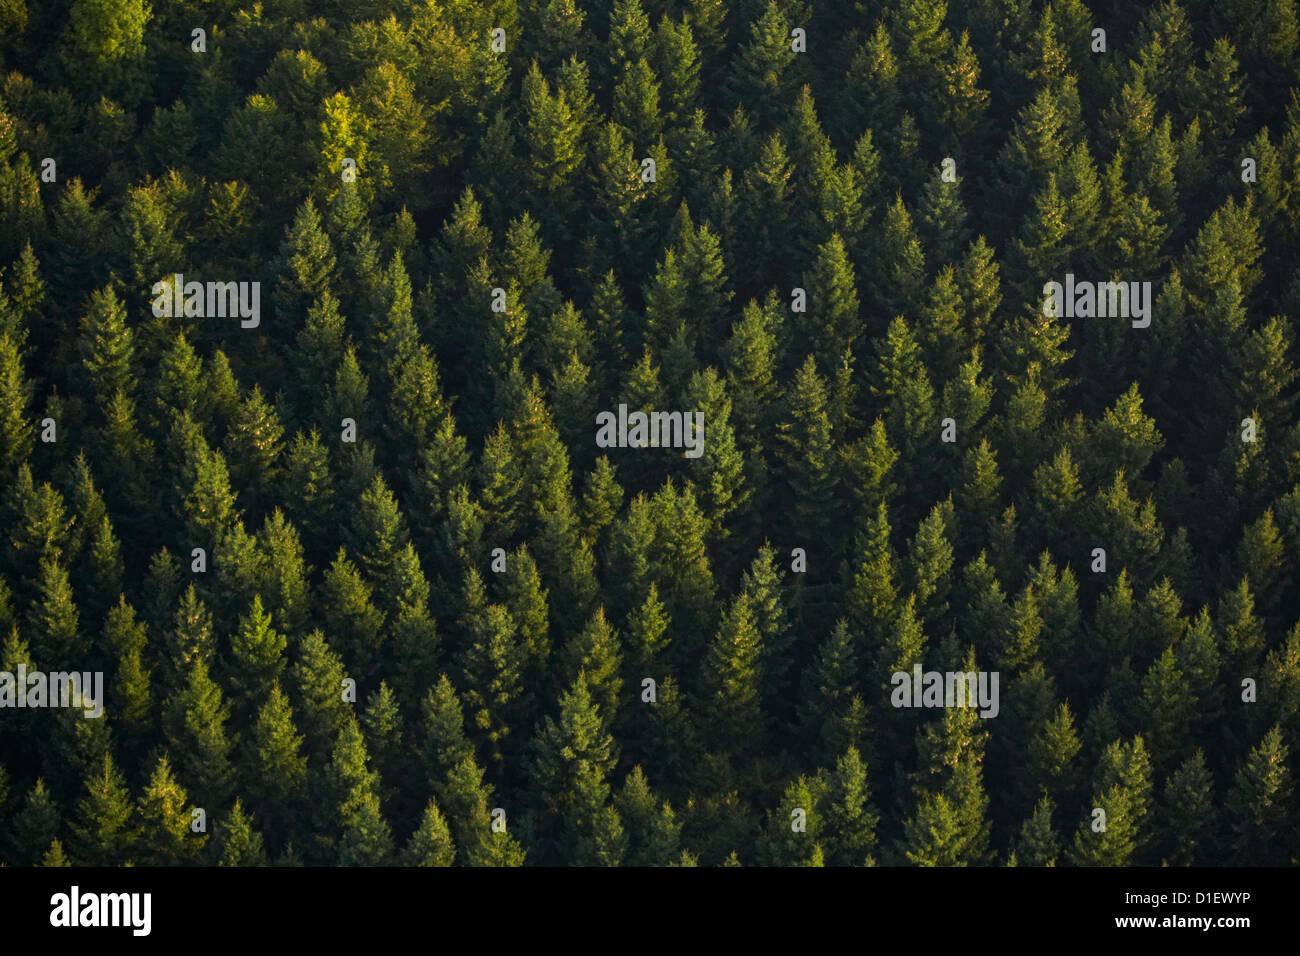 Conifer forest near Sigmaringen, Baden-Wuerttemberg, Germany, aerial photo - Stock Image